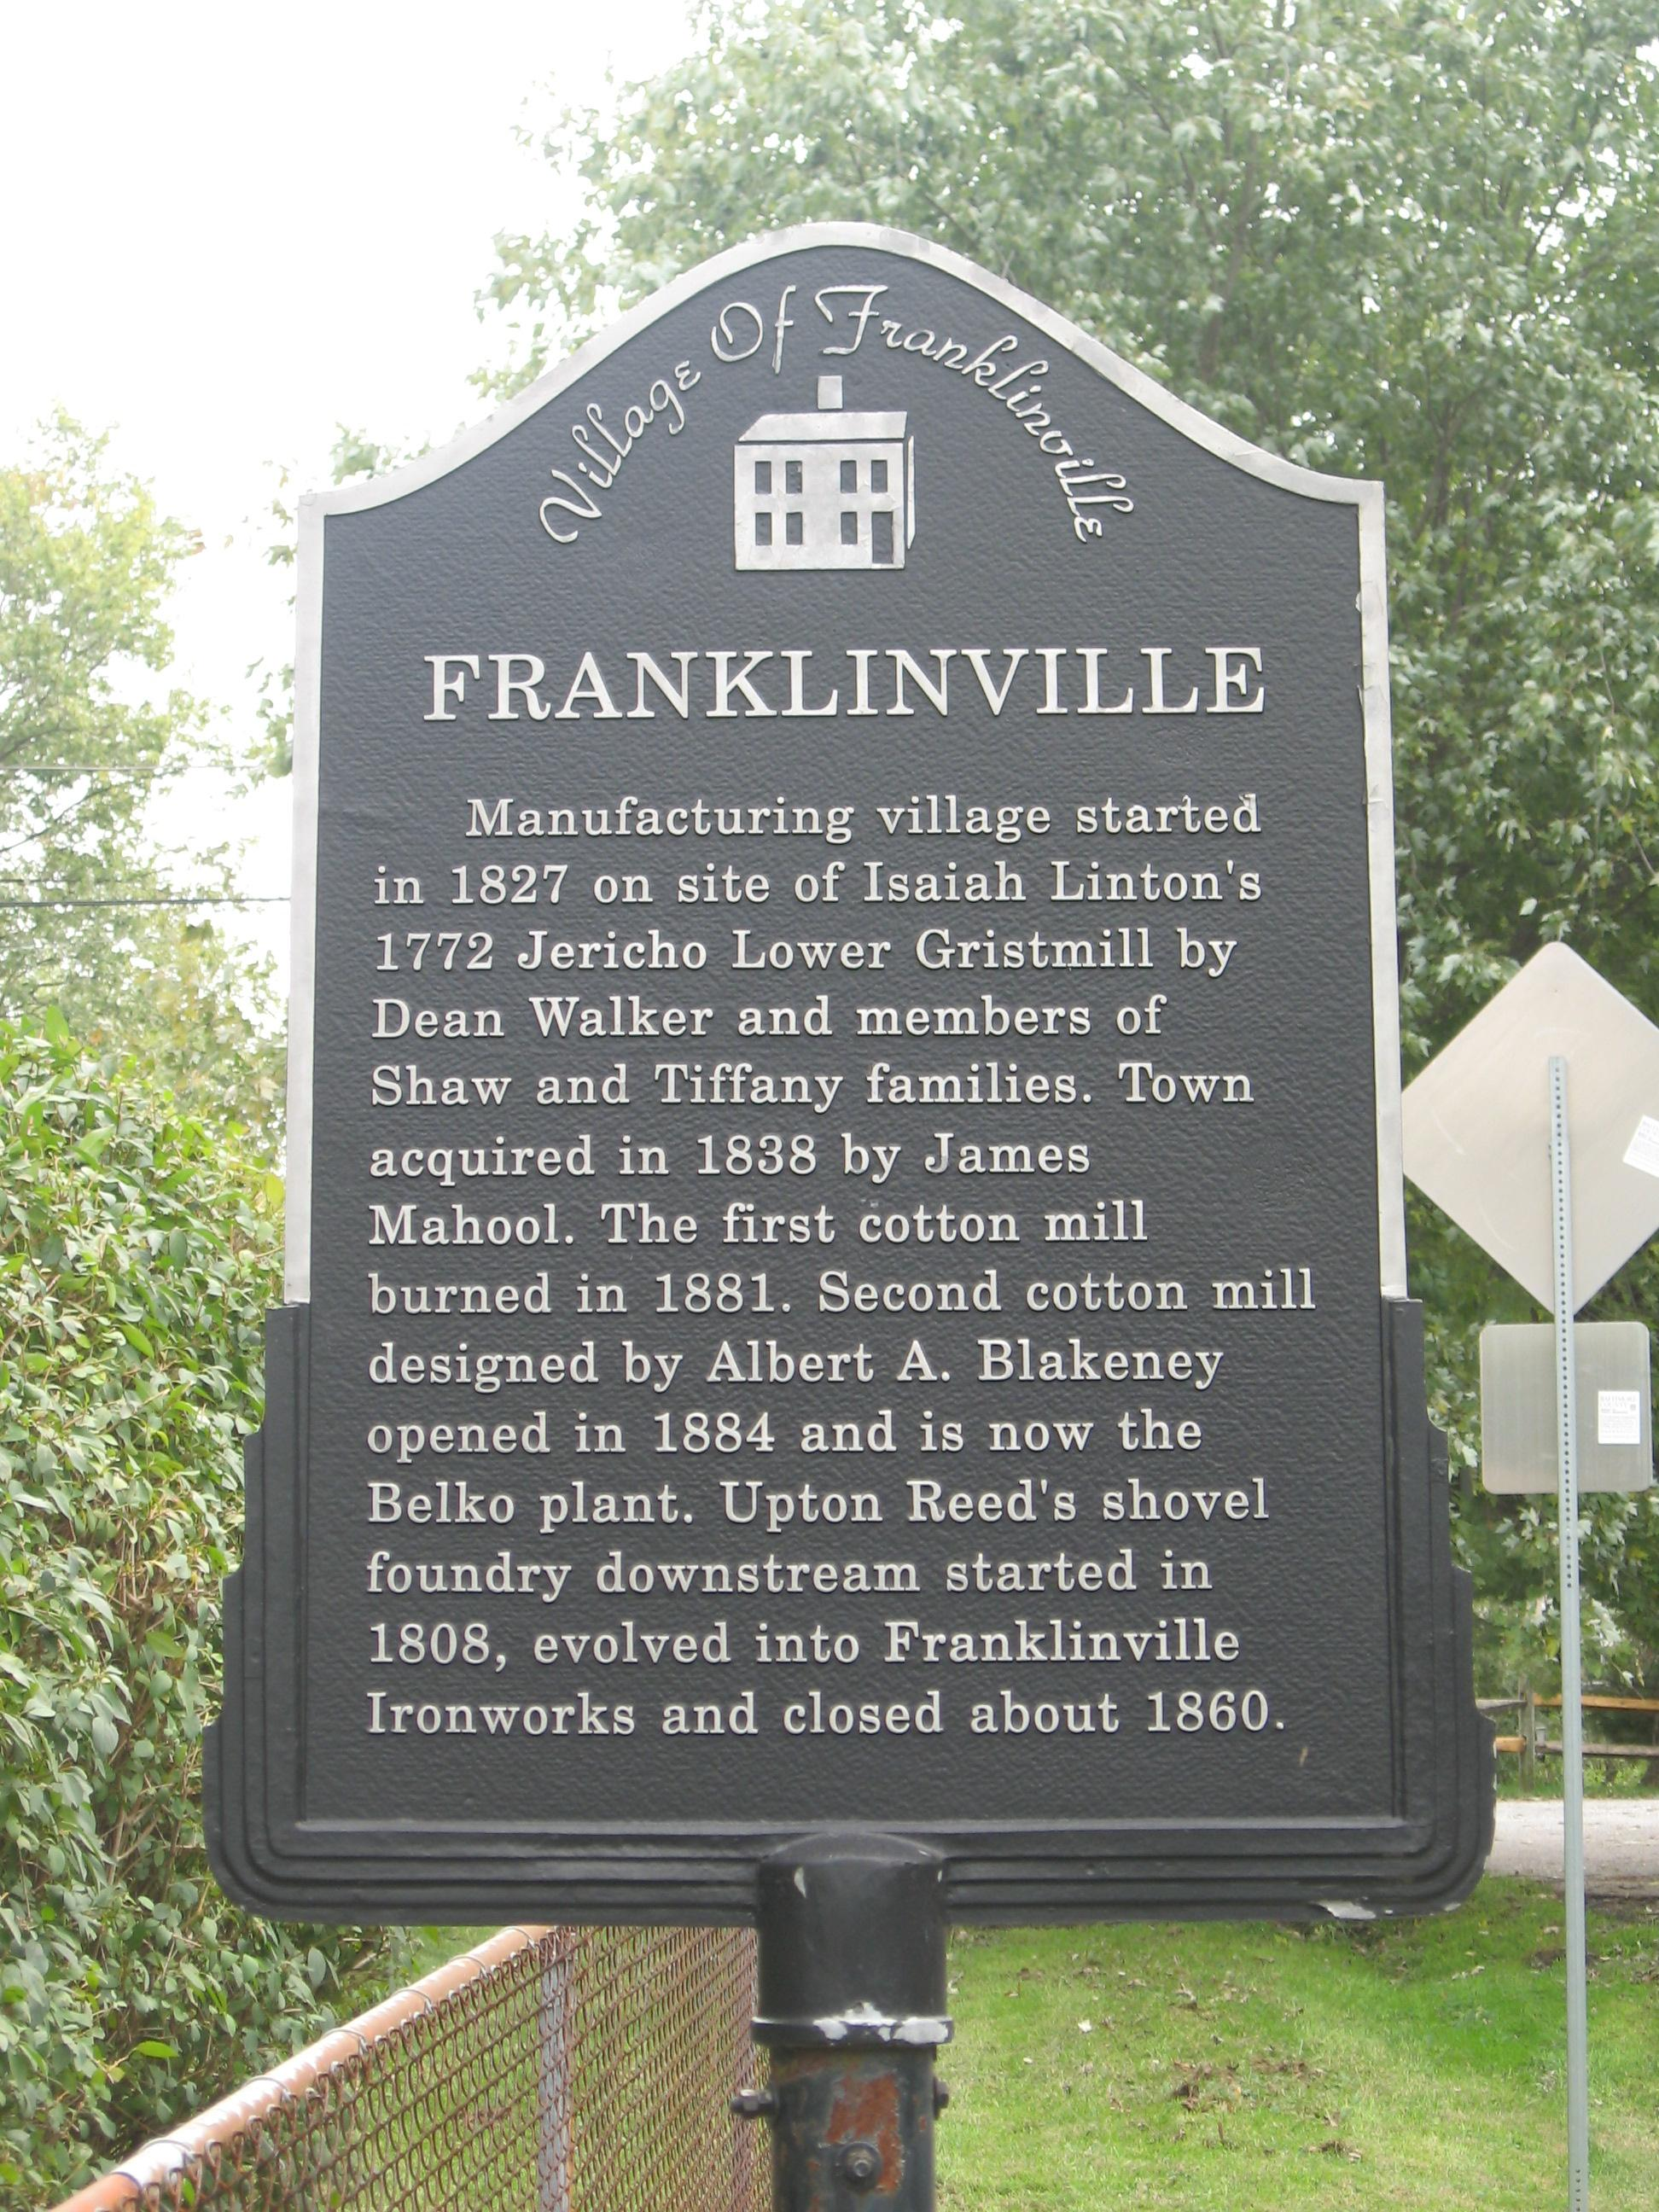 franklinville dating Franklinville dating and personals personal ads for franklinville, ny are a great way to find a life partner, movie date, or a quick hookup personals are for people local to franklinville, ny and are for ages 18+ of either sex.